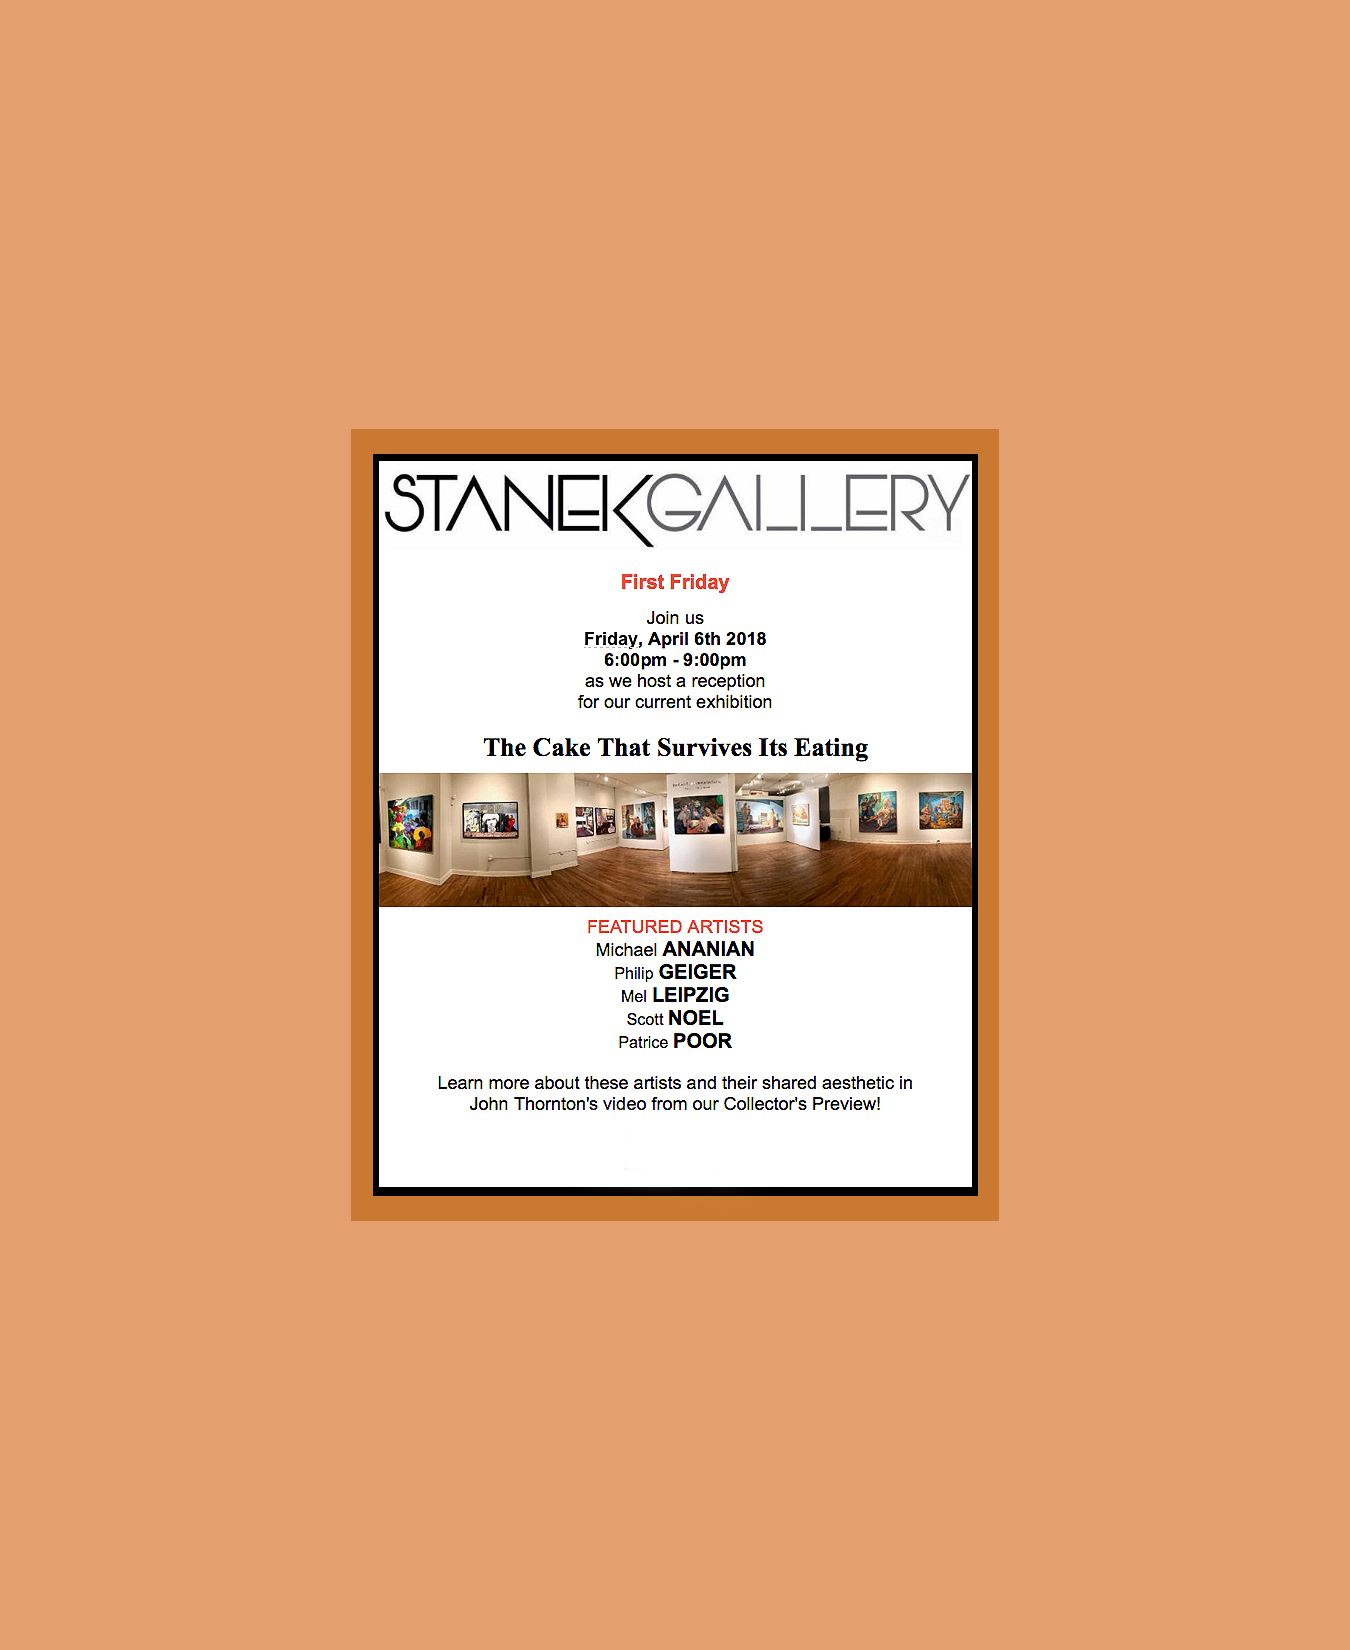 Tony_Ward_Studio_Stanek_Gallery_exhibition_announcement_first_friday_Philadelphia_exhibition